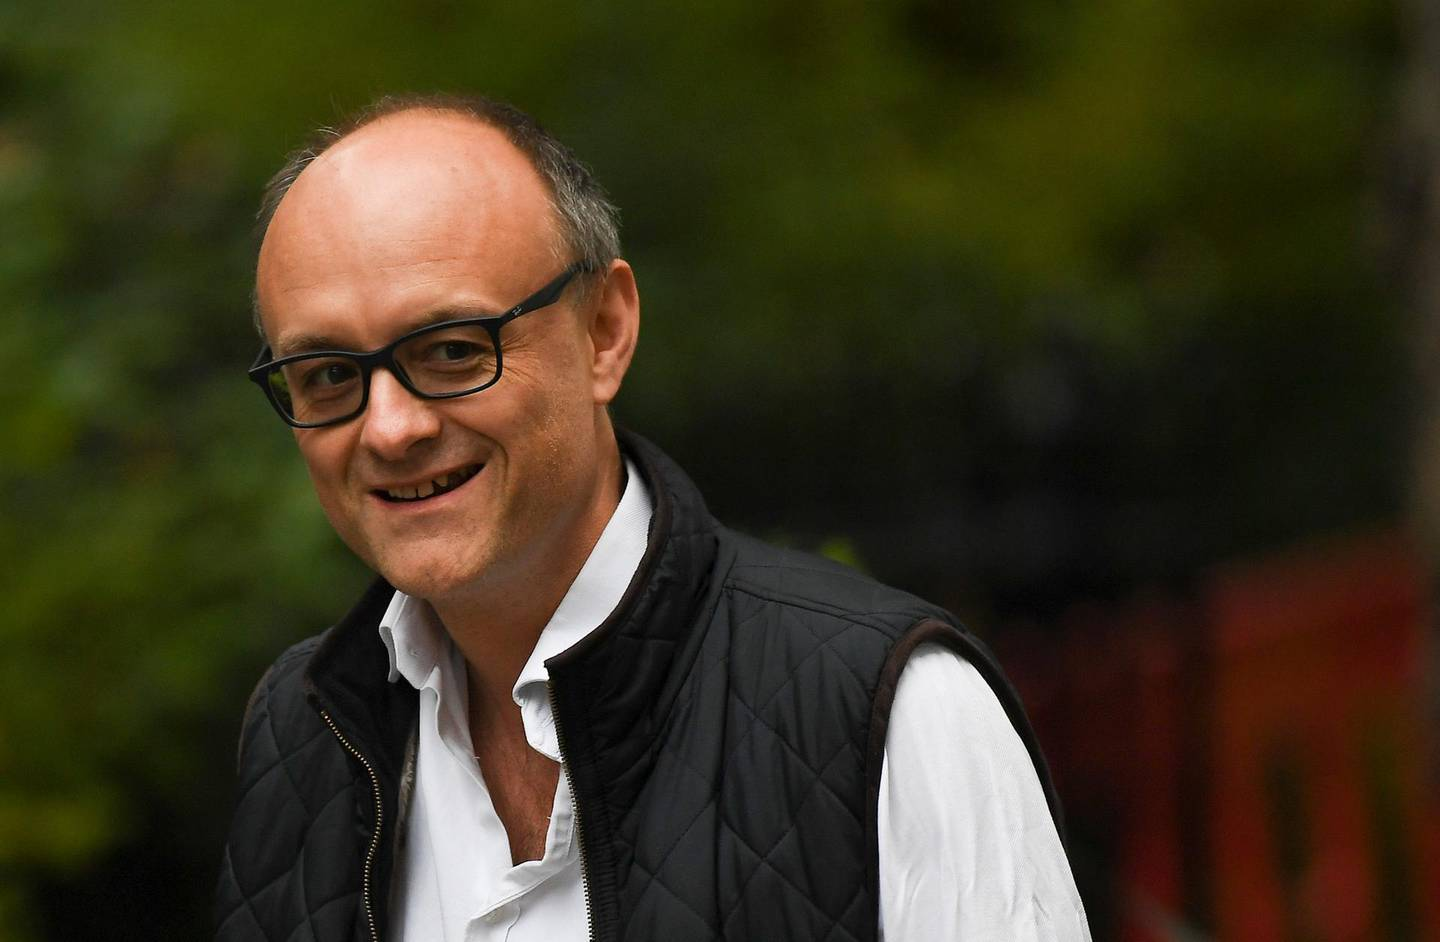 Dominic Cummings, political strategist and special adviser to British Prime Minister Boris Johnson, arrives at 10 Downing Street, in London, Tuesday, Sept. 3, 2019. Boris Johnson says he doesn't want an election and has urged legislators not to undercut Britain's negotiating position with the European Union. (AP Photo/Alberto Pezzali)